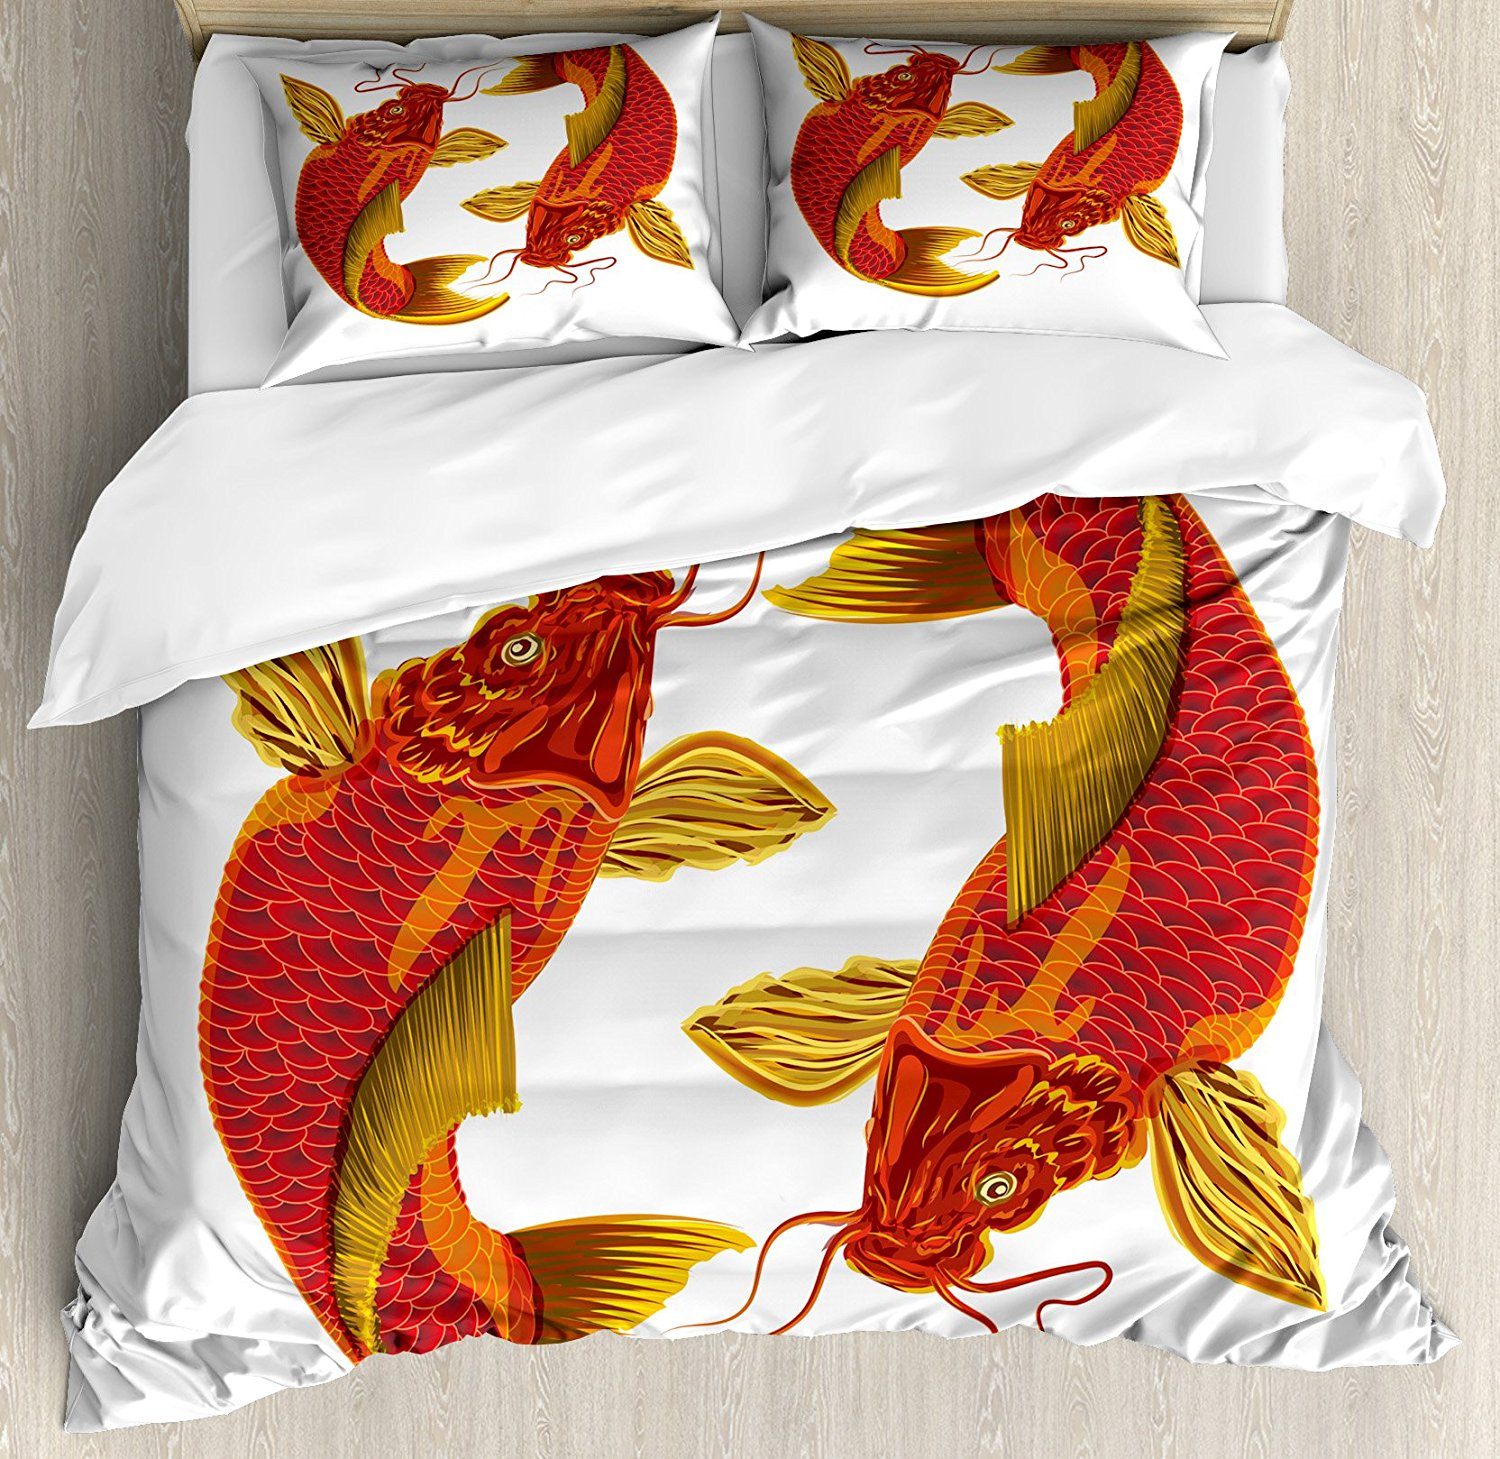 Home Textile Bedding Japanese King Size Duvet Cover Set Carp Koi Fish Illustration With Warm Tones Oriental Symbols Of Union 4 Piece Bedding Set Modern Techniques